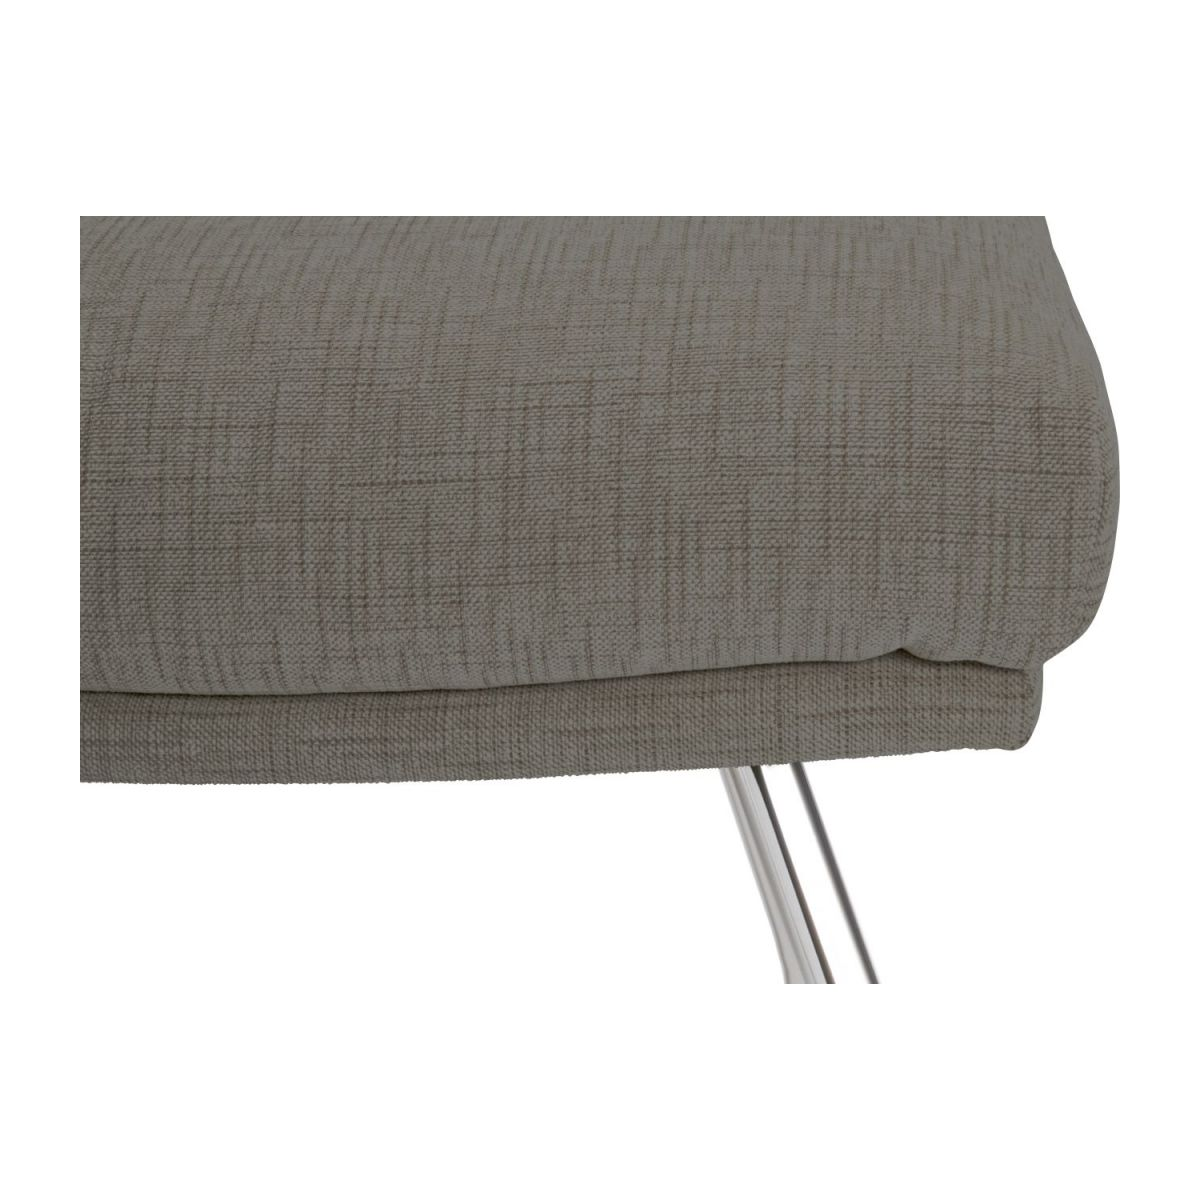 Footstool in Ancio fabric, river rock with chromed metal legs n°6